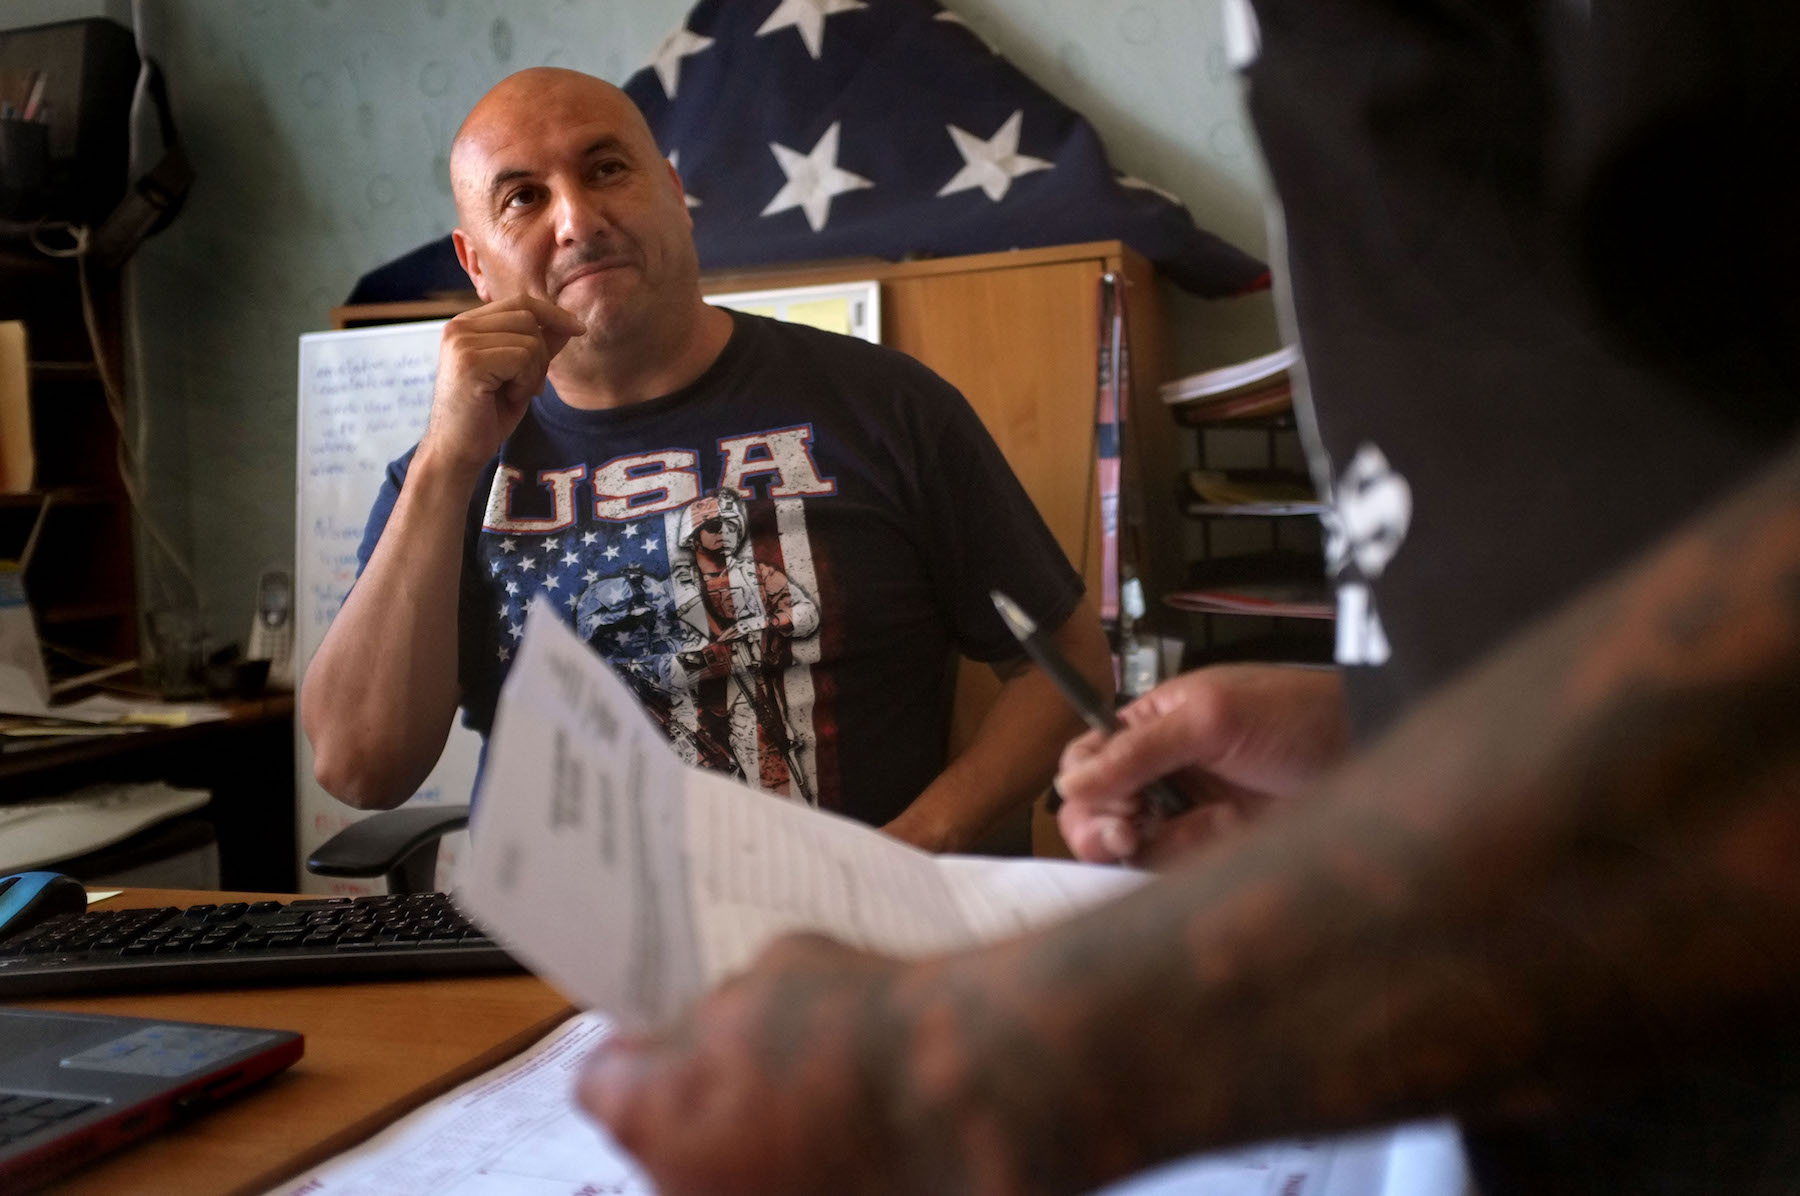 Hector Barajas, founder and director of the Deported Veteran's Support House in Tijuana. Photo by David Maung for CALmatters